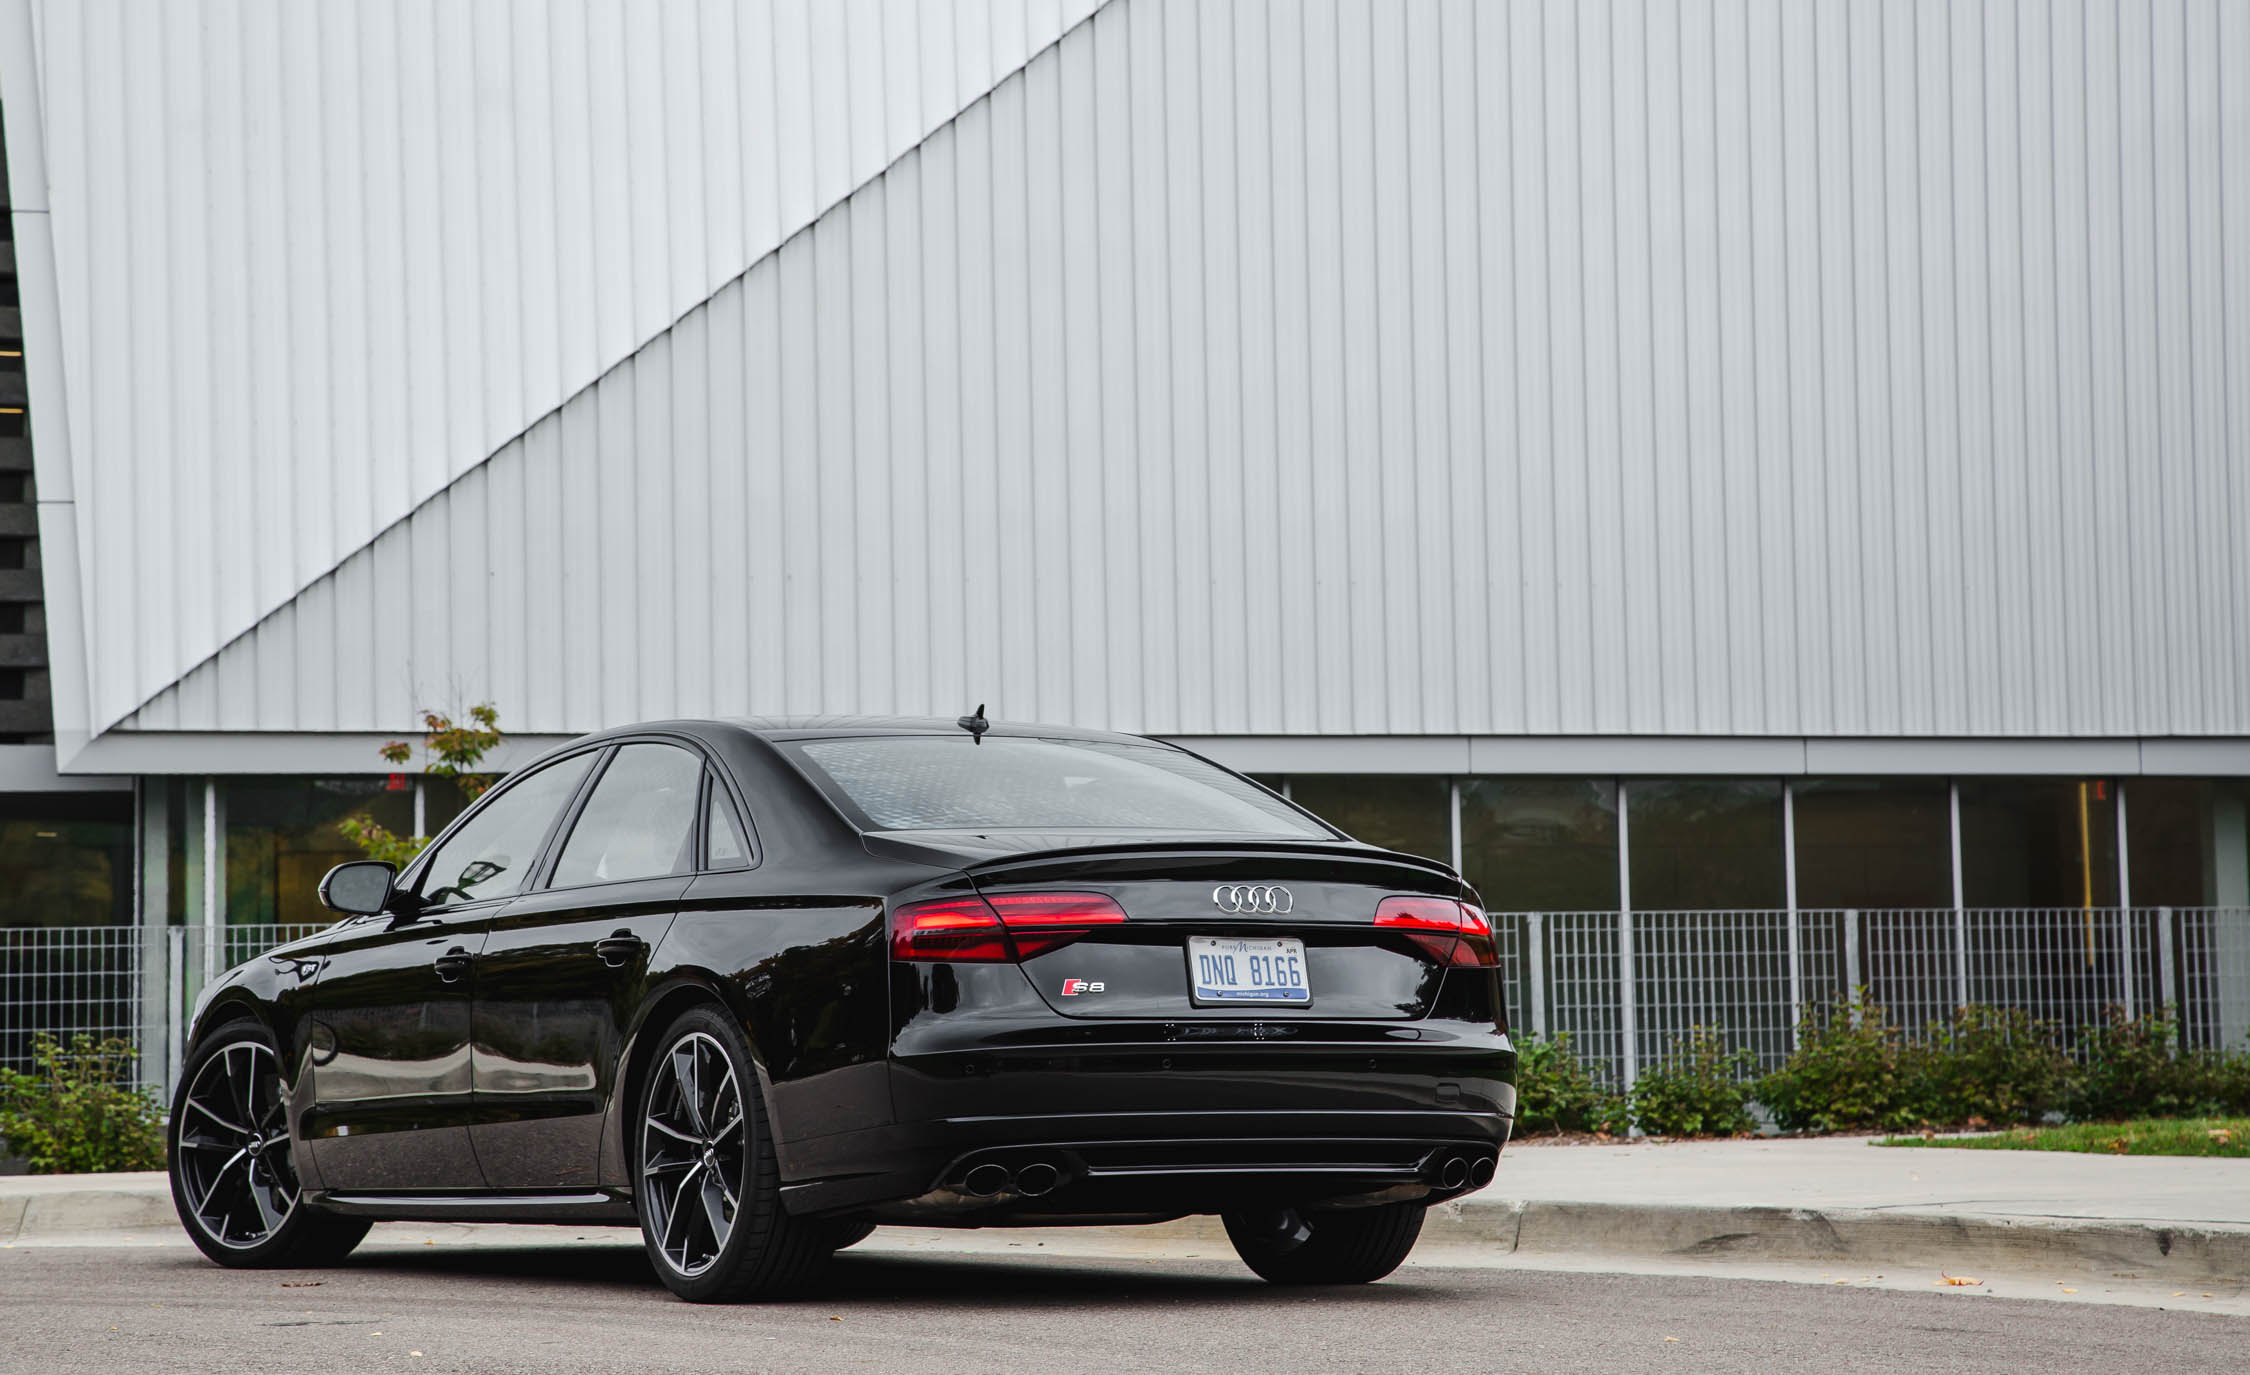 2017 Audi S8 Plus Exterior Rear And Side (Photo 5 of 36)